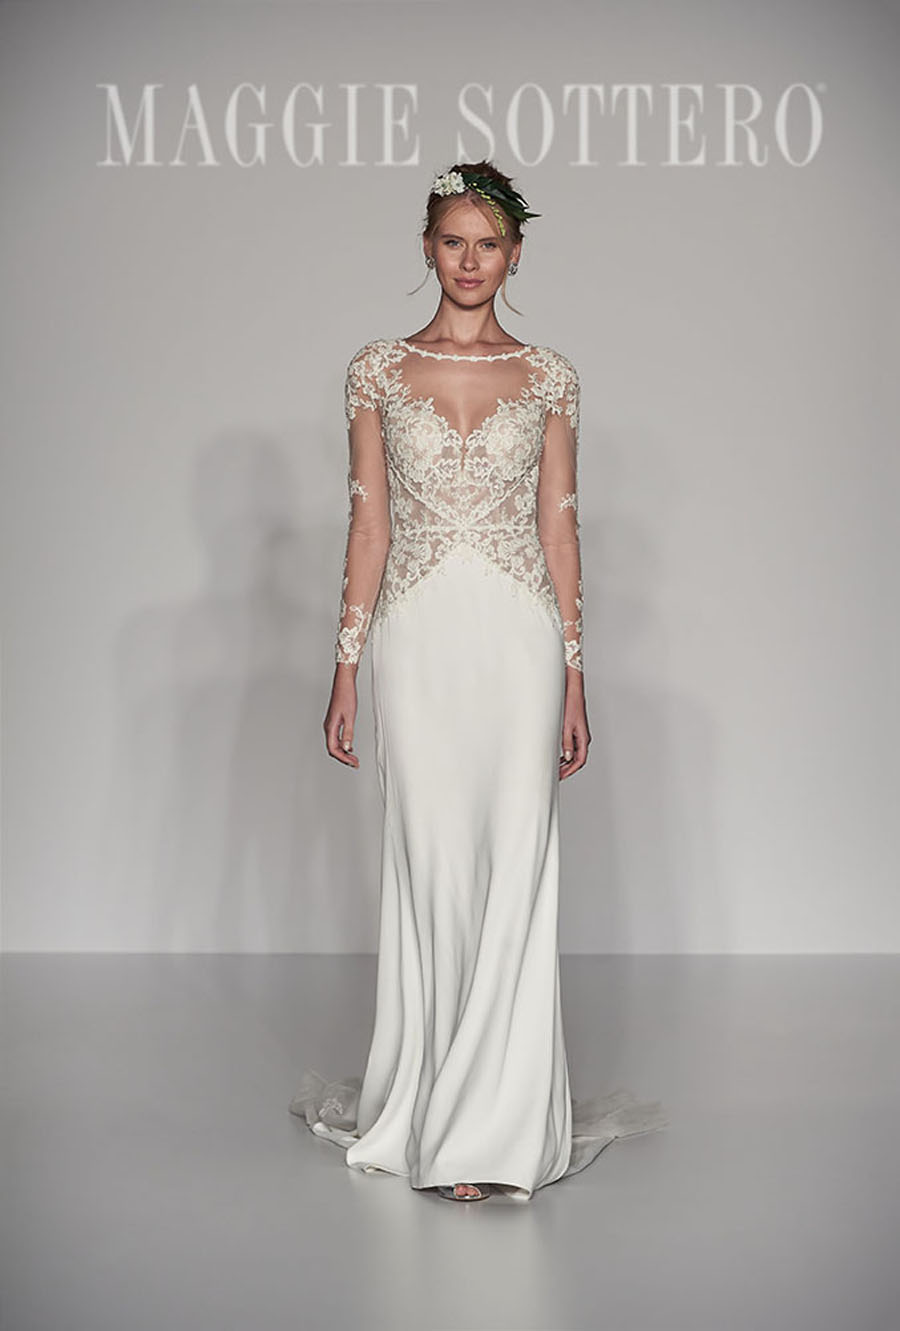 Maggie Sottero Spring 2017 Collection - Blanch Front